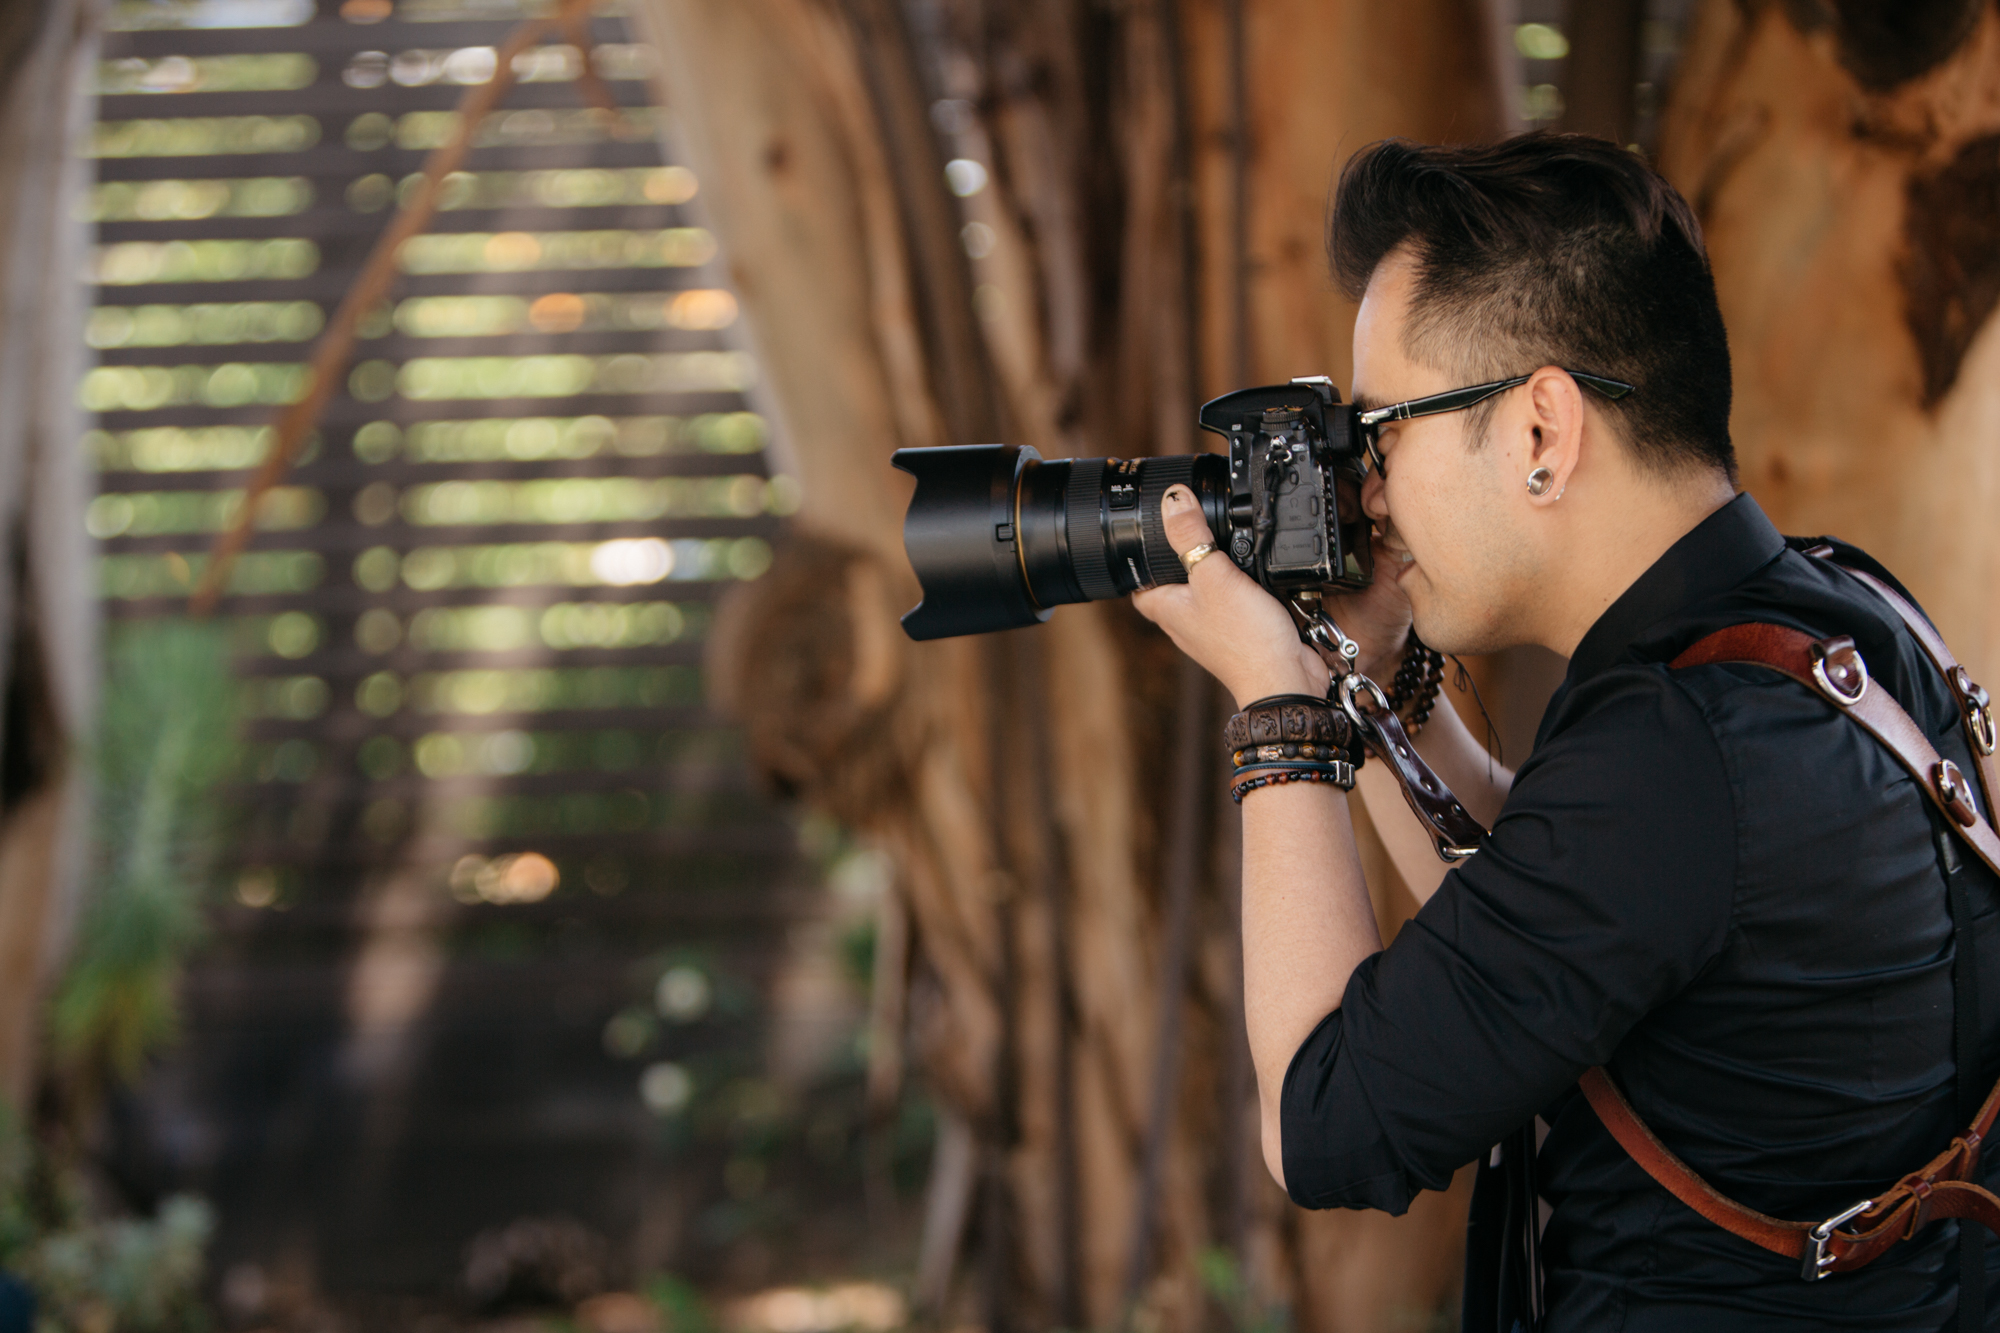 Kevin Le Vu Photography photo + video team-9.jpg